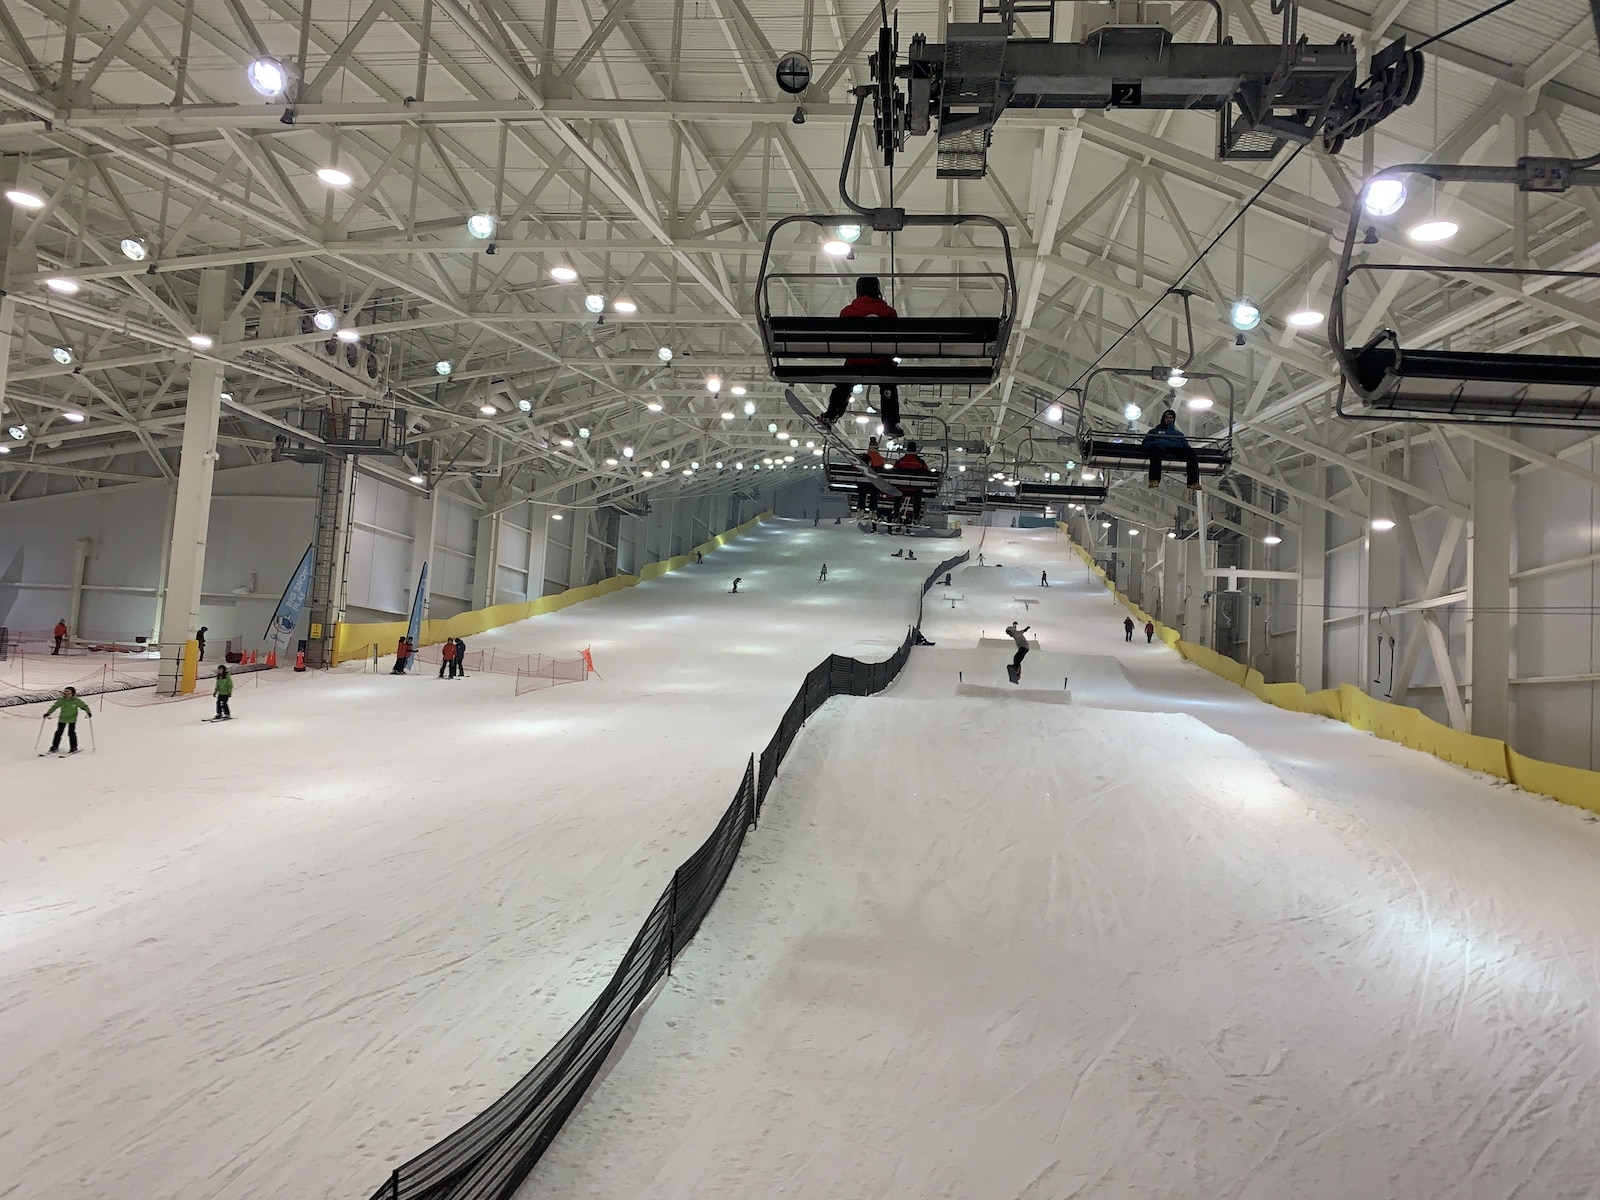 Image of the indoor ski area Big SNOW at the American Dream mall in New Jersey